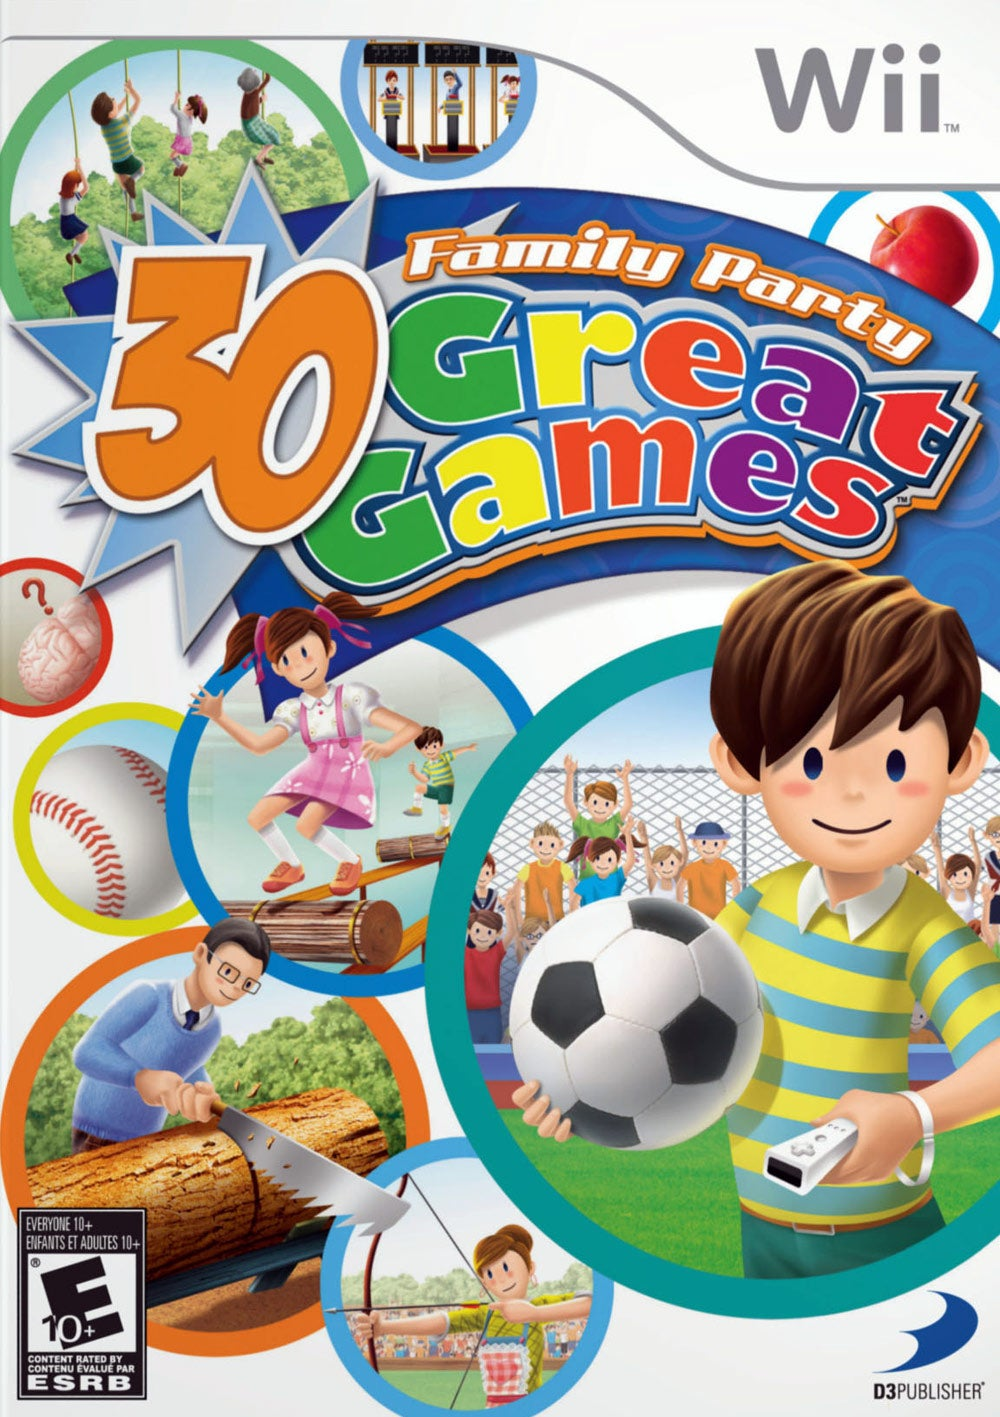 Family Party 30 Great Games Wii IGN